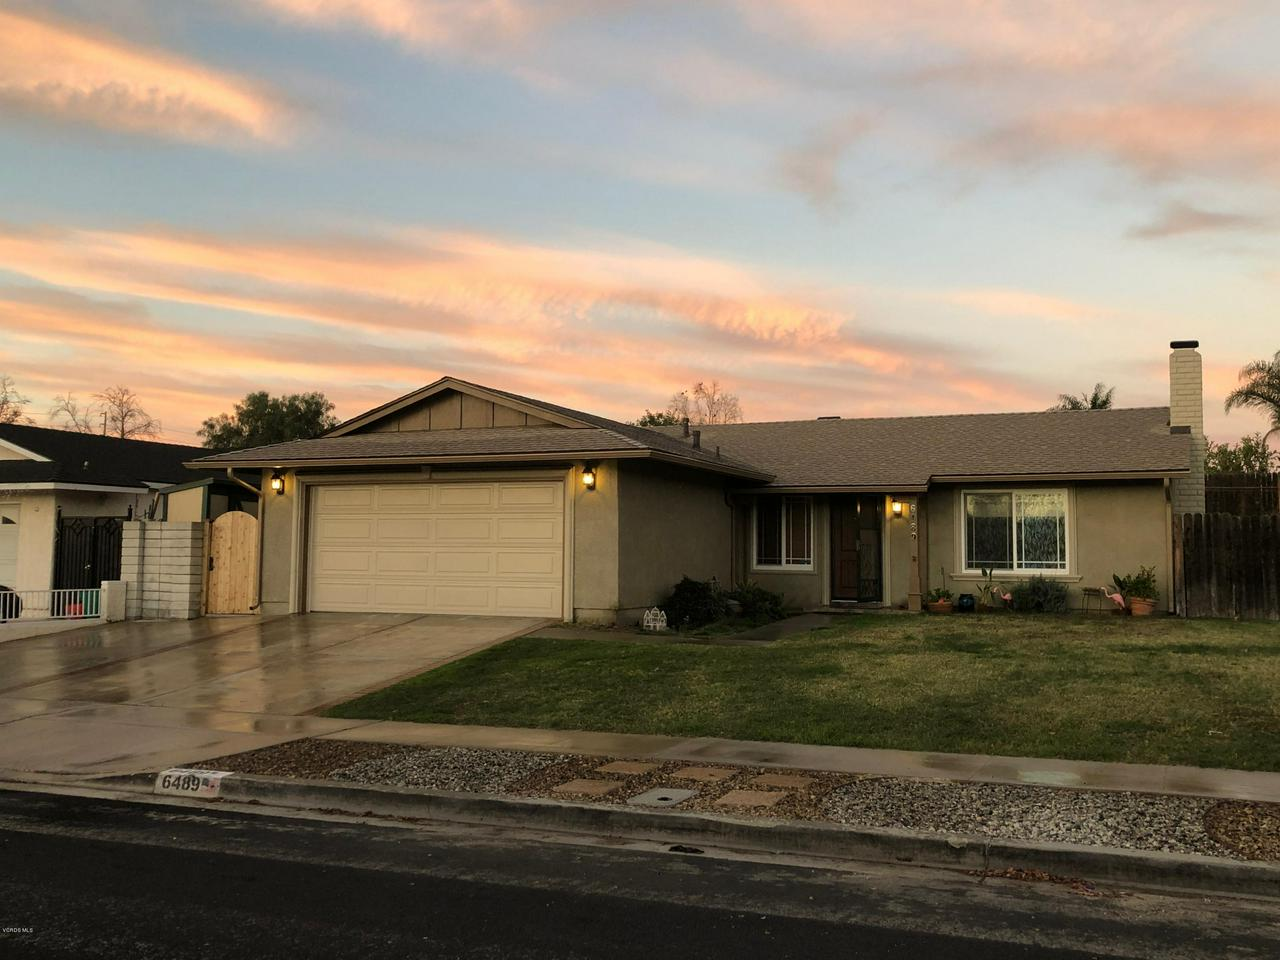 6489 DUKE, Moorpark, CA 93021 - A_Home Front 1